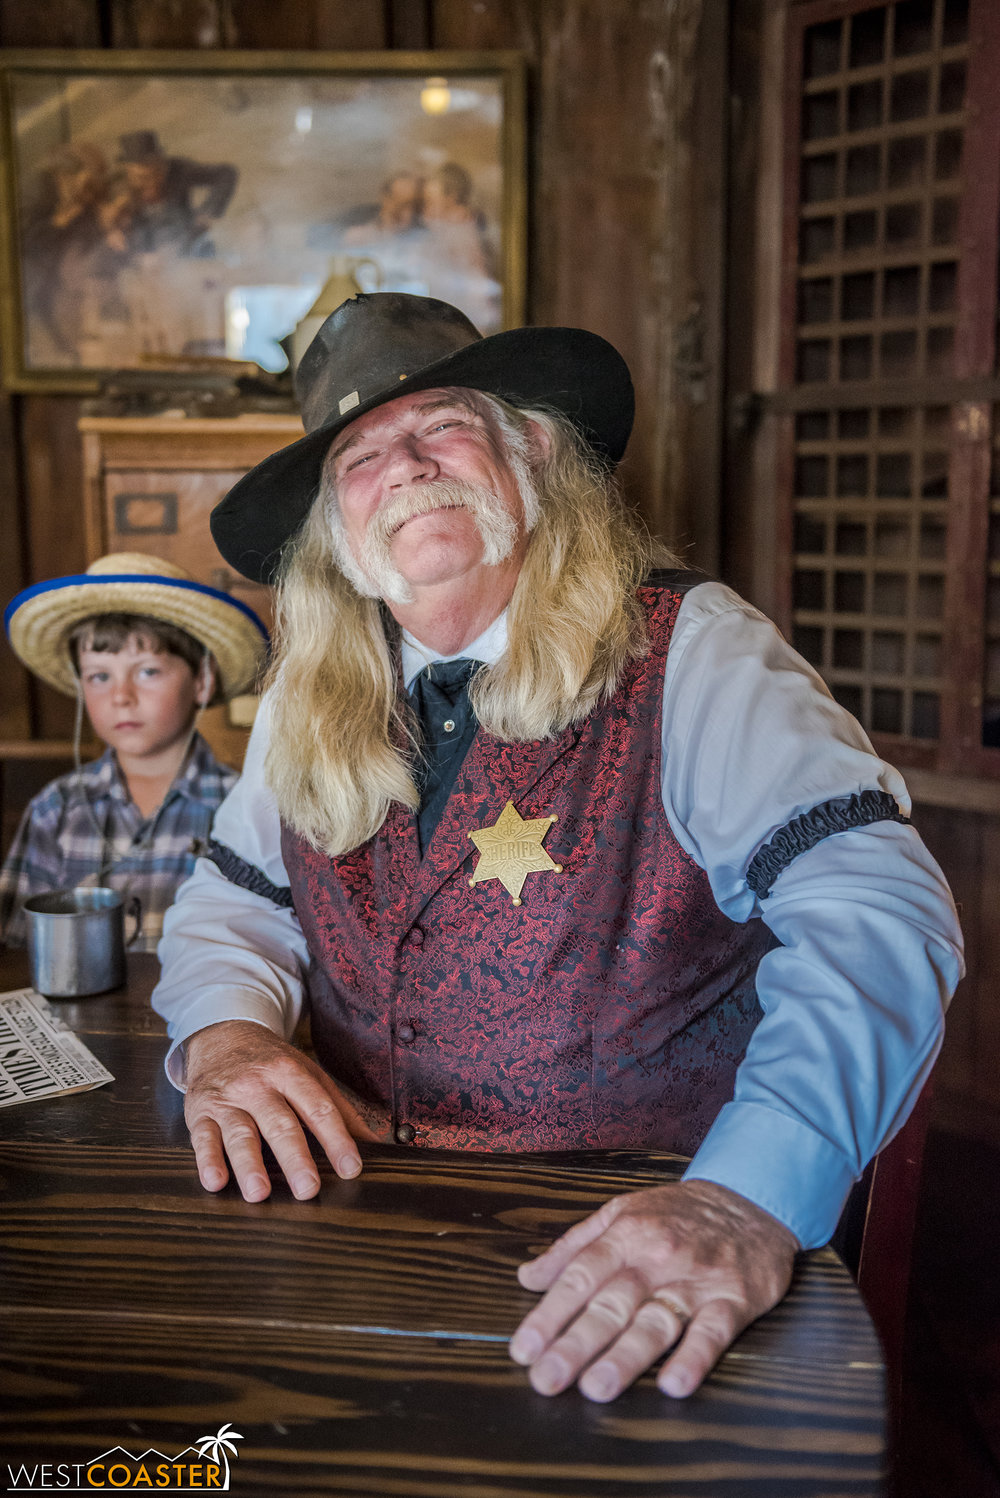 Of course, Sheriff Bryce Wheeler is around as always.  On this day, he's waiting for a stagecoach to arrive carrying his date to the Founder's Day Hoedown, Goldie West.  Unfortunately, the stagecoach has been delayed by three days, much to many people's consternation.